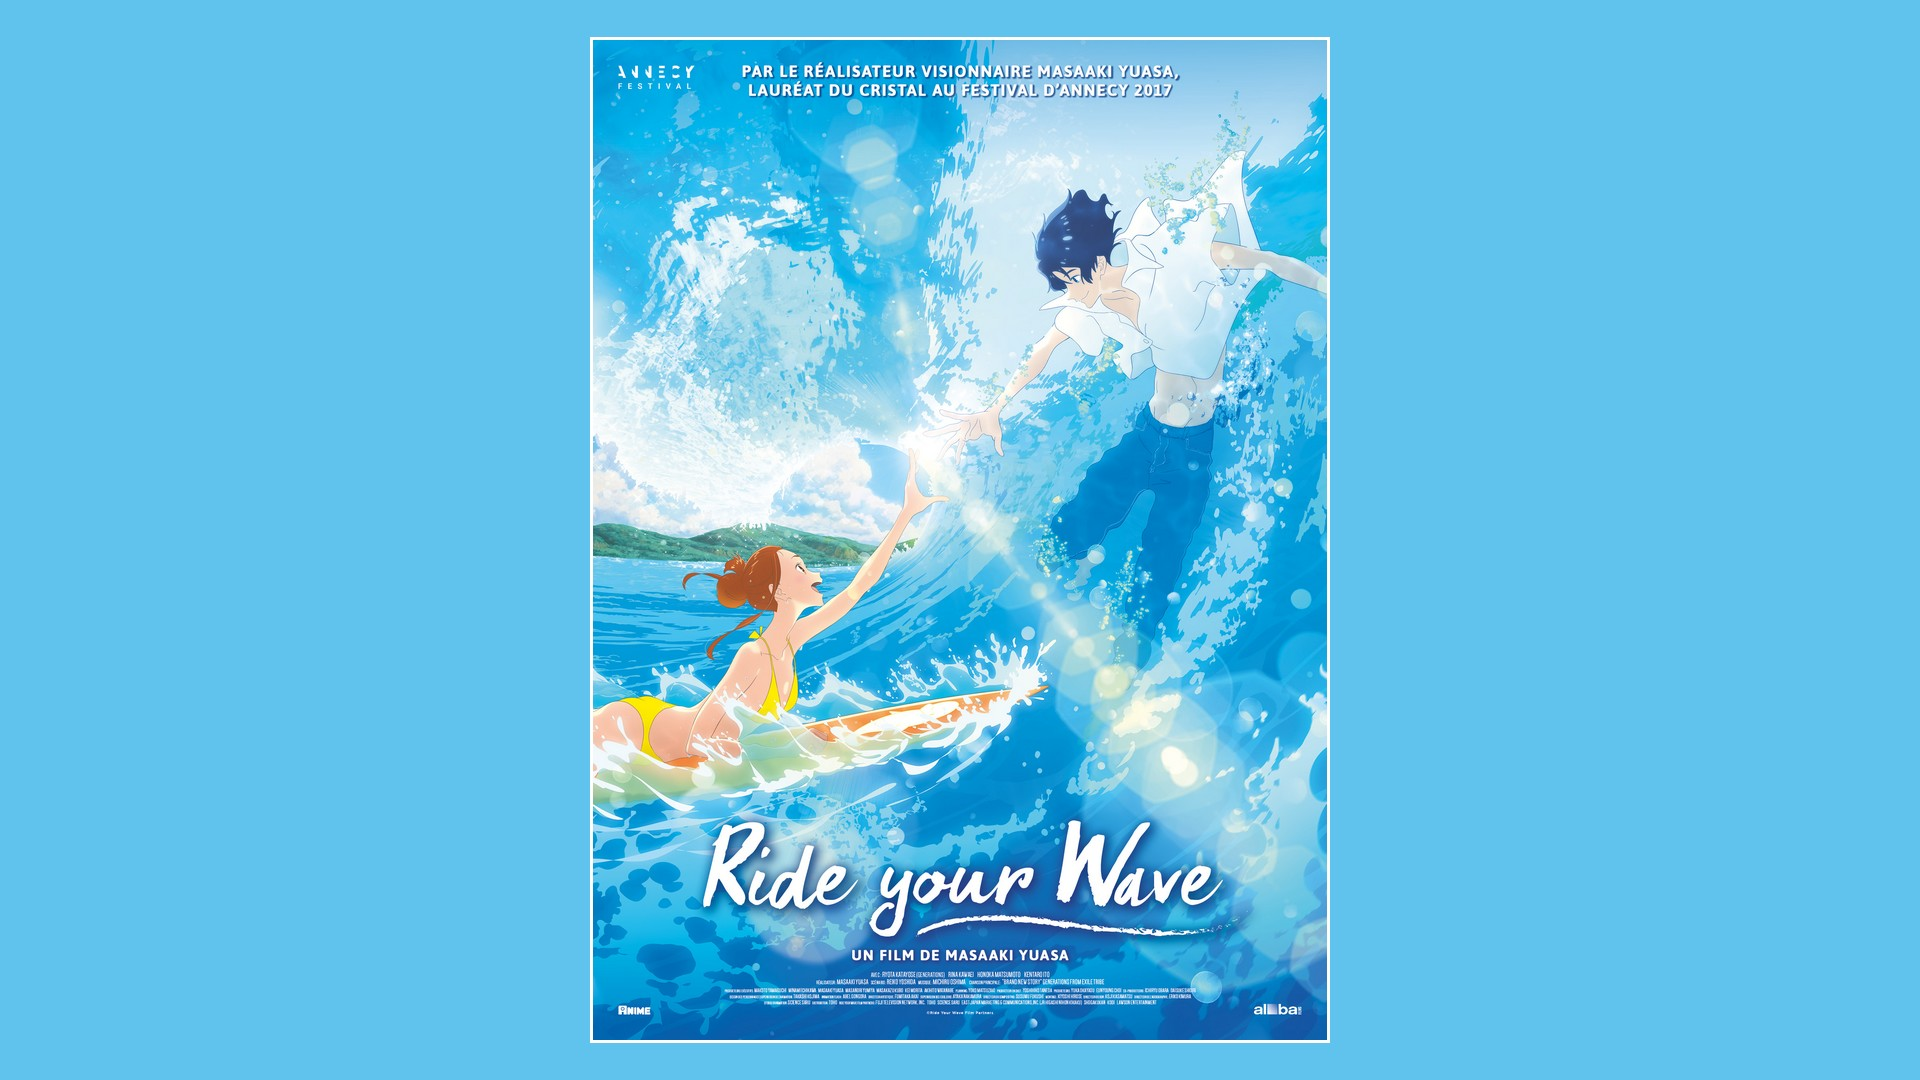 Film – Ride your wave (2021)